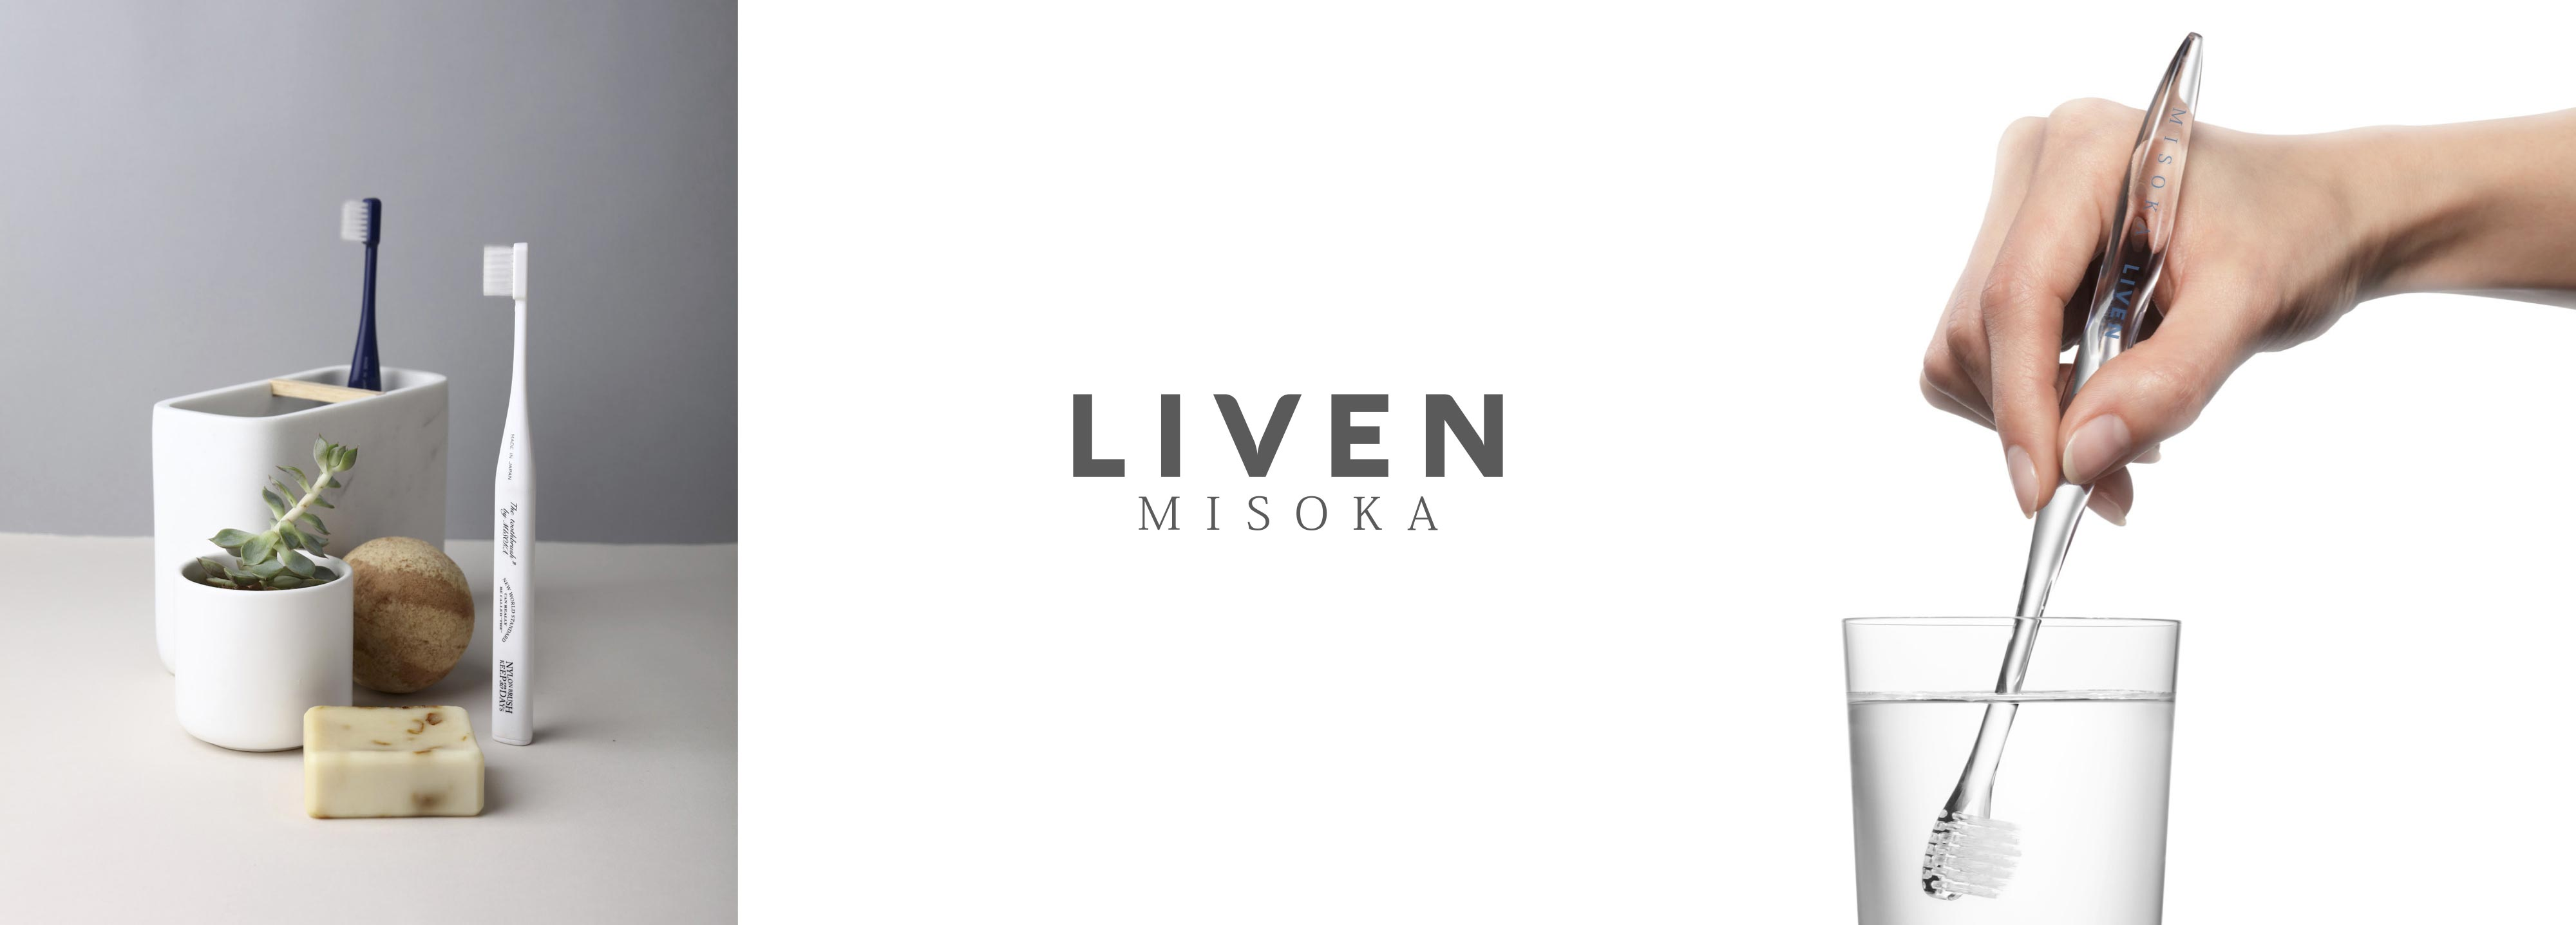 The new image of Liven Misoka by Hangar Design Group